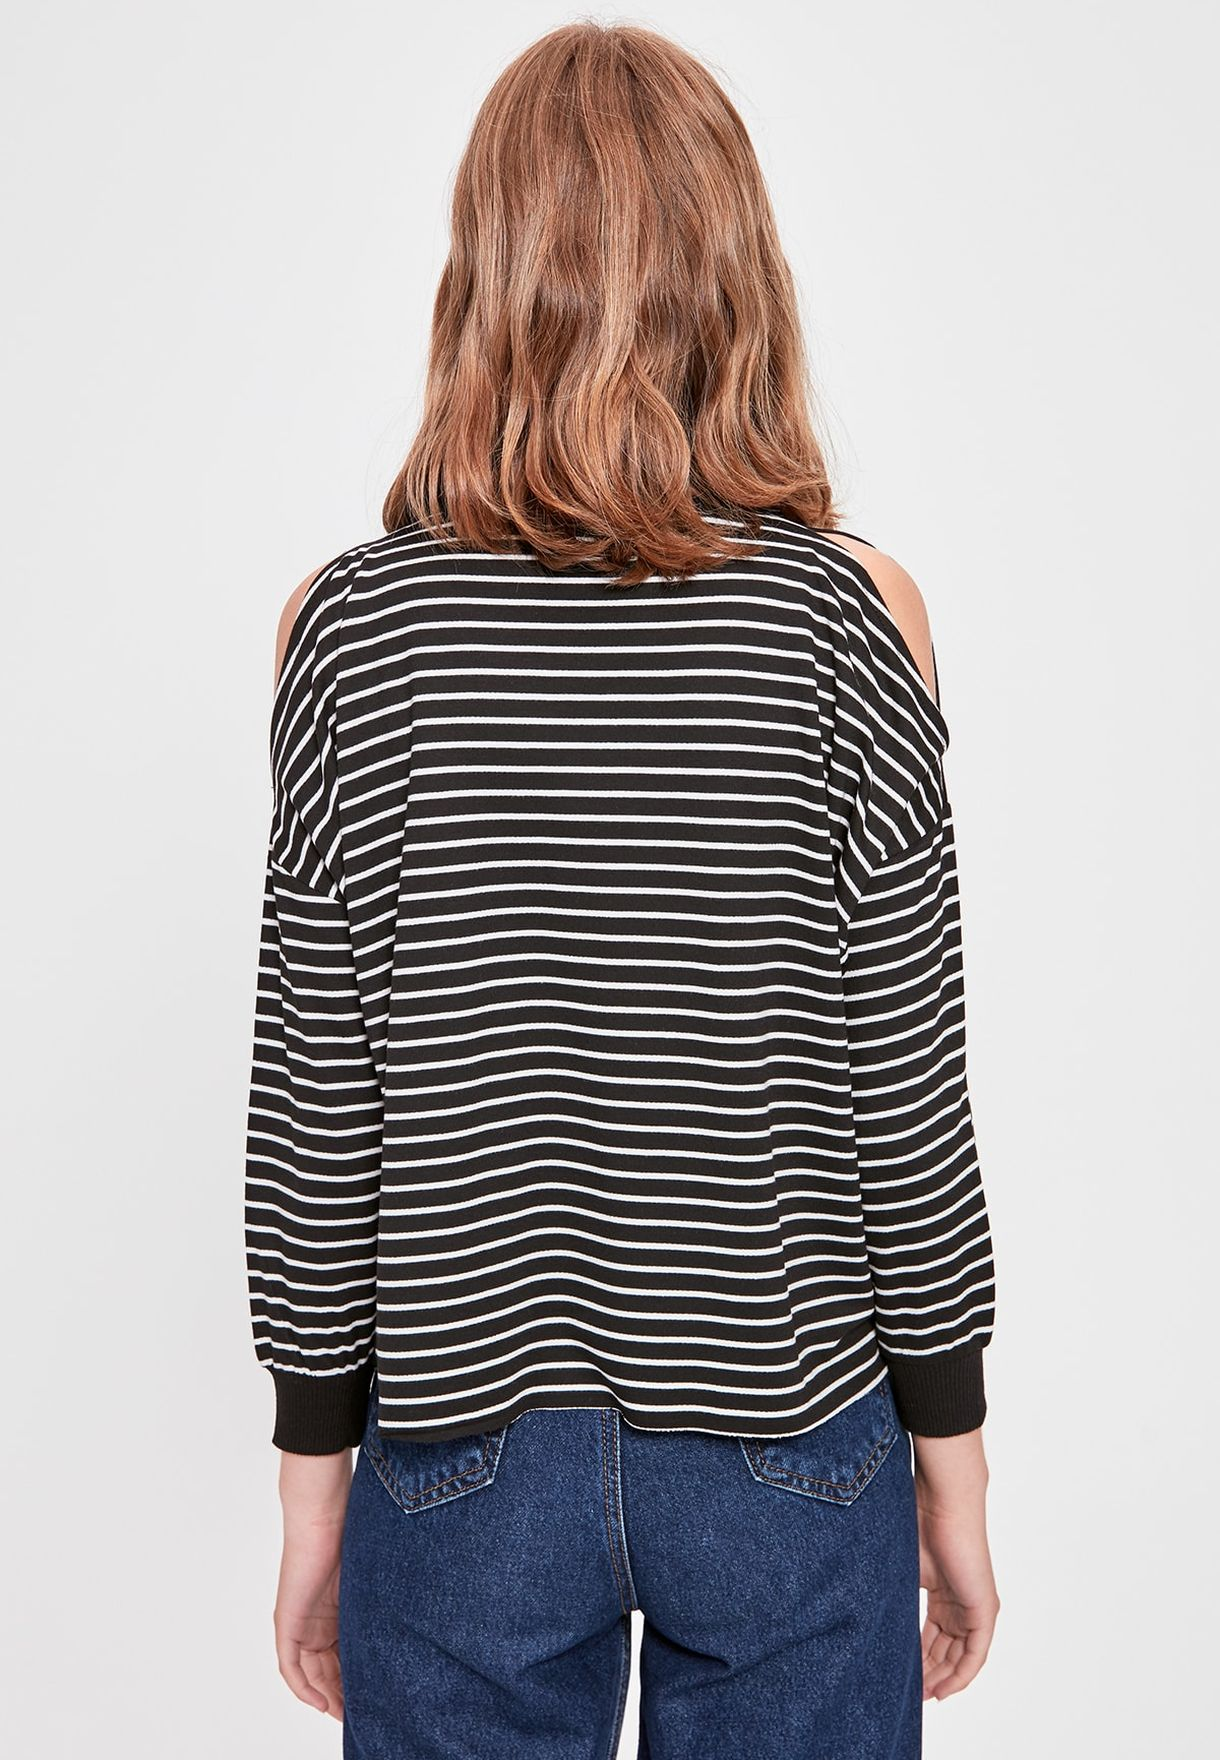 Cut Out Shoulder Striped Sweatshirt